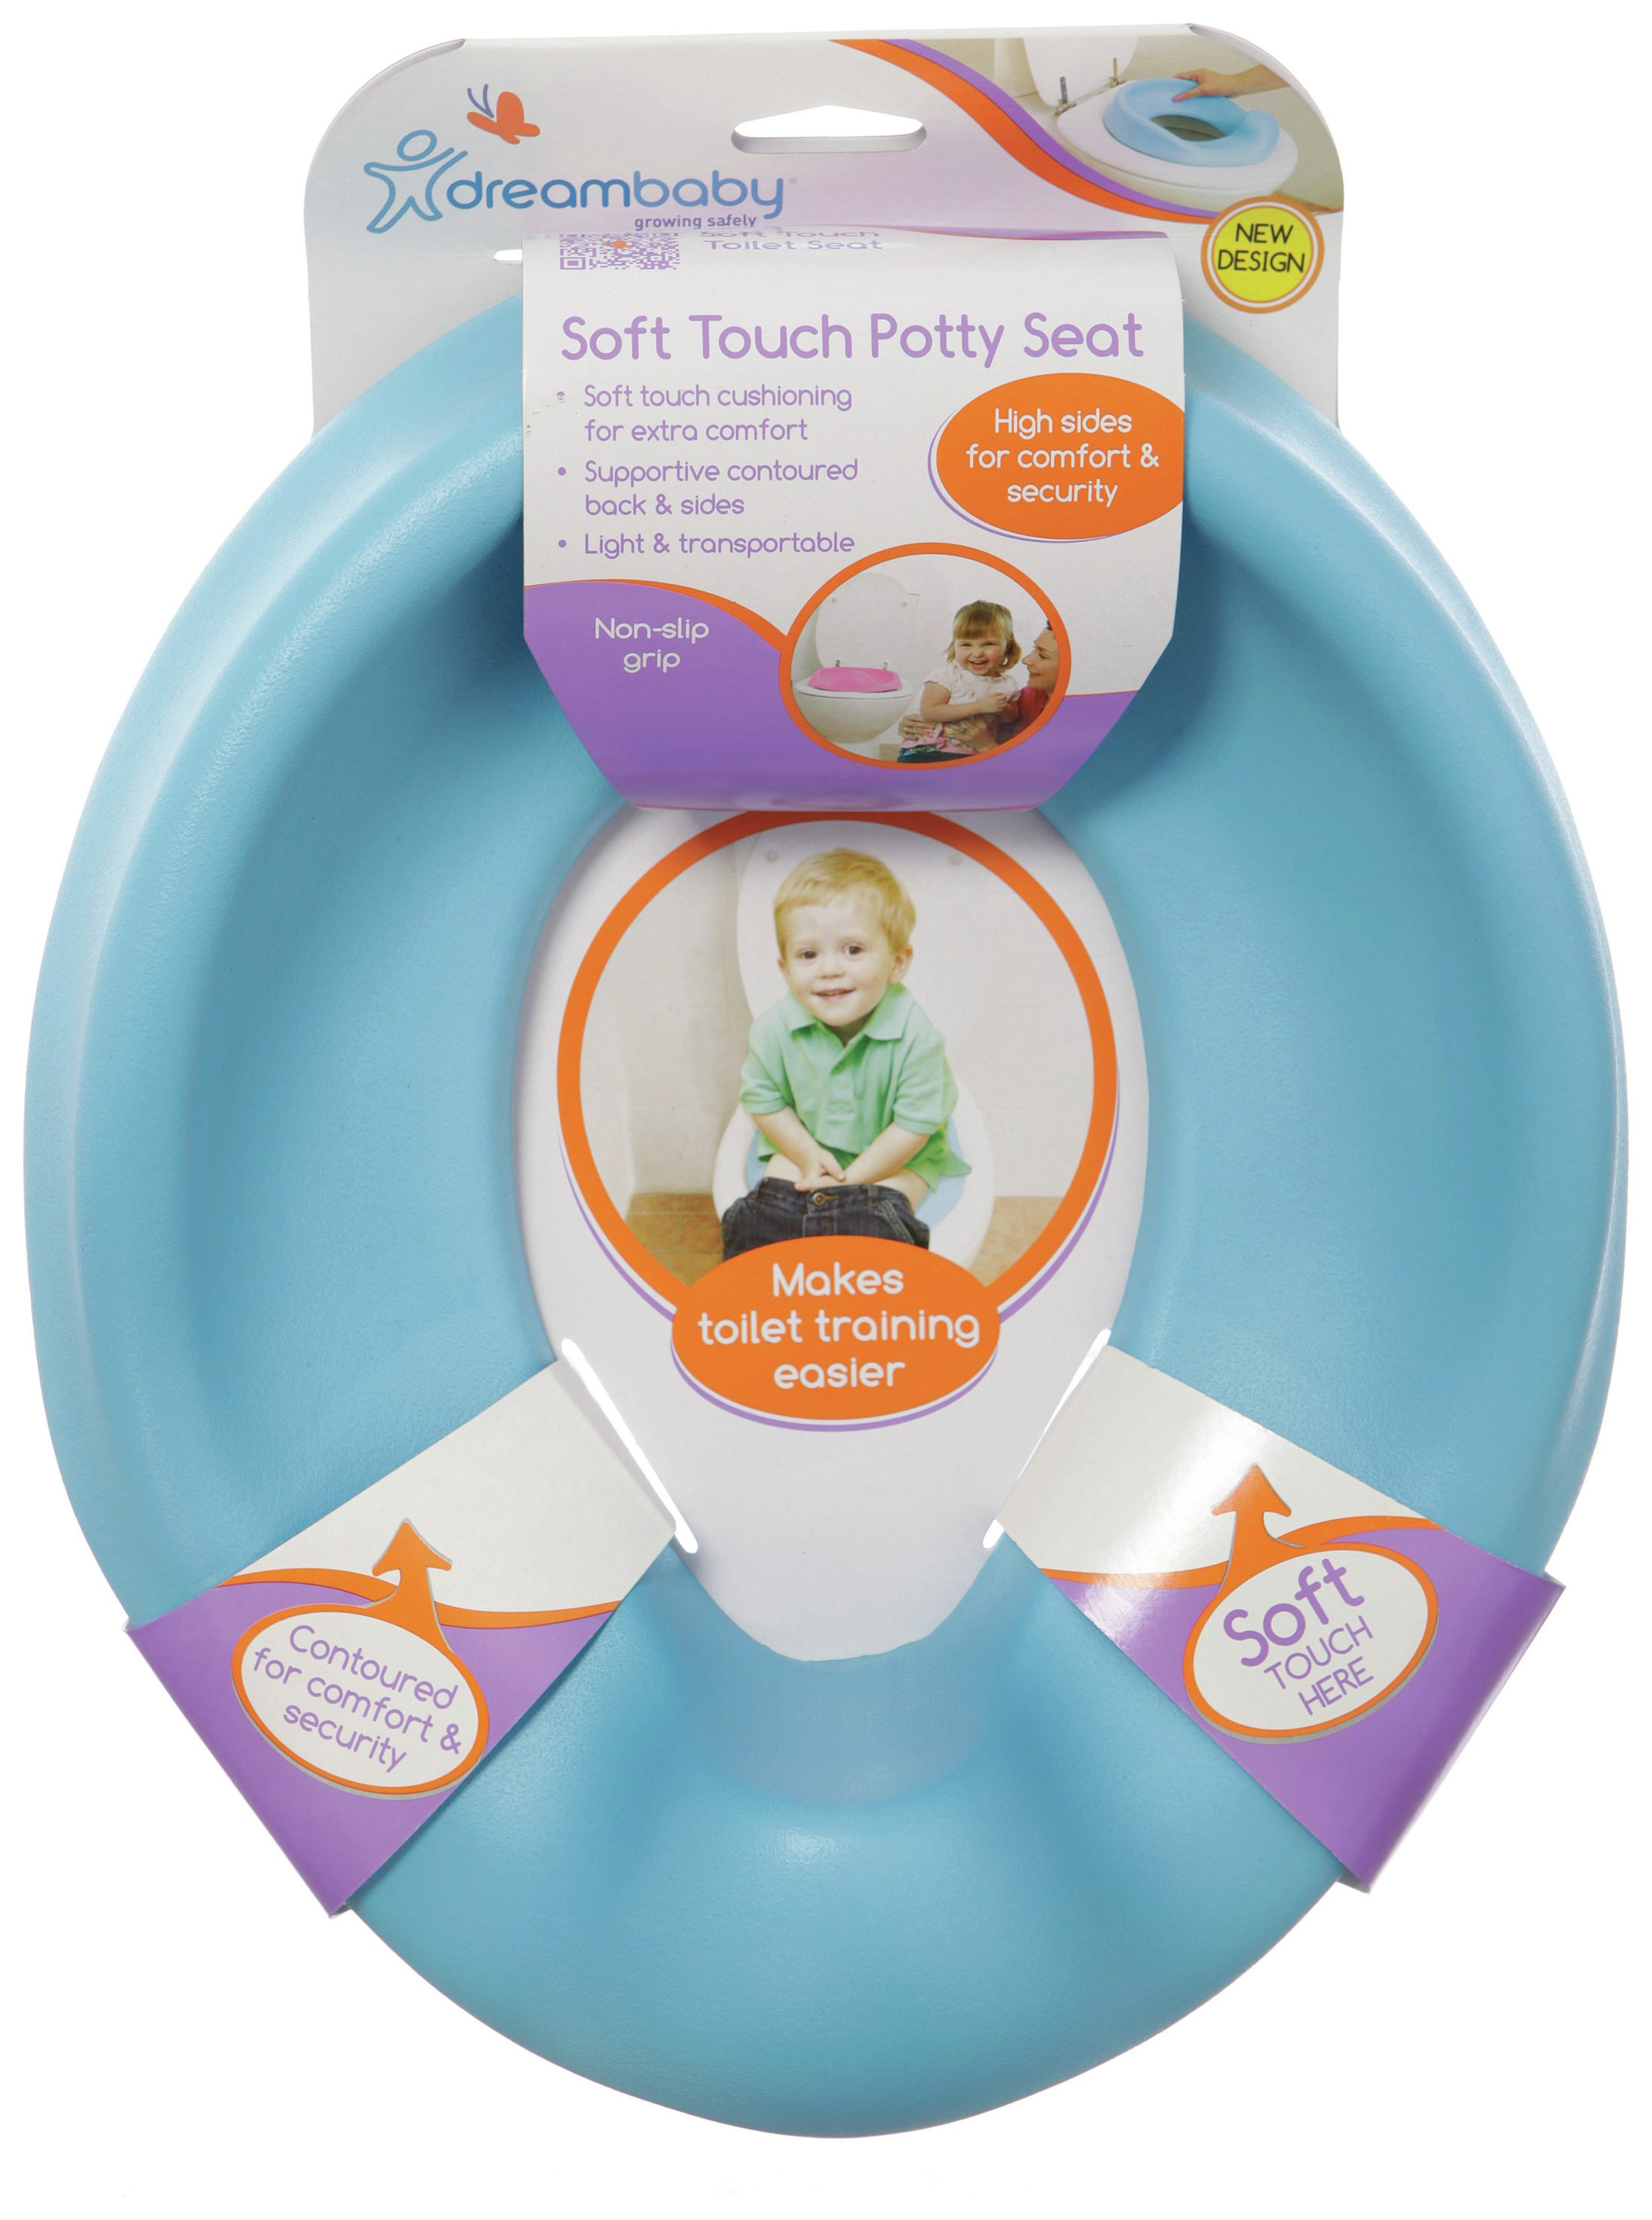 Image of Dreambaby Comfy Contoured Potty Seat - Blue.